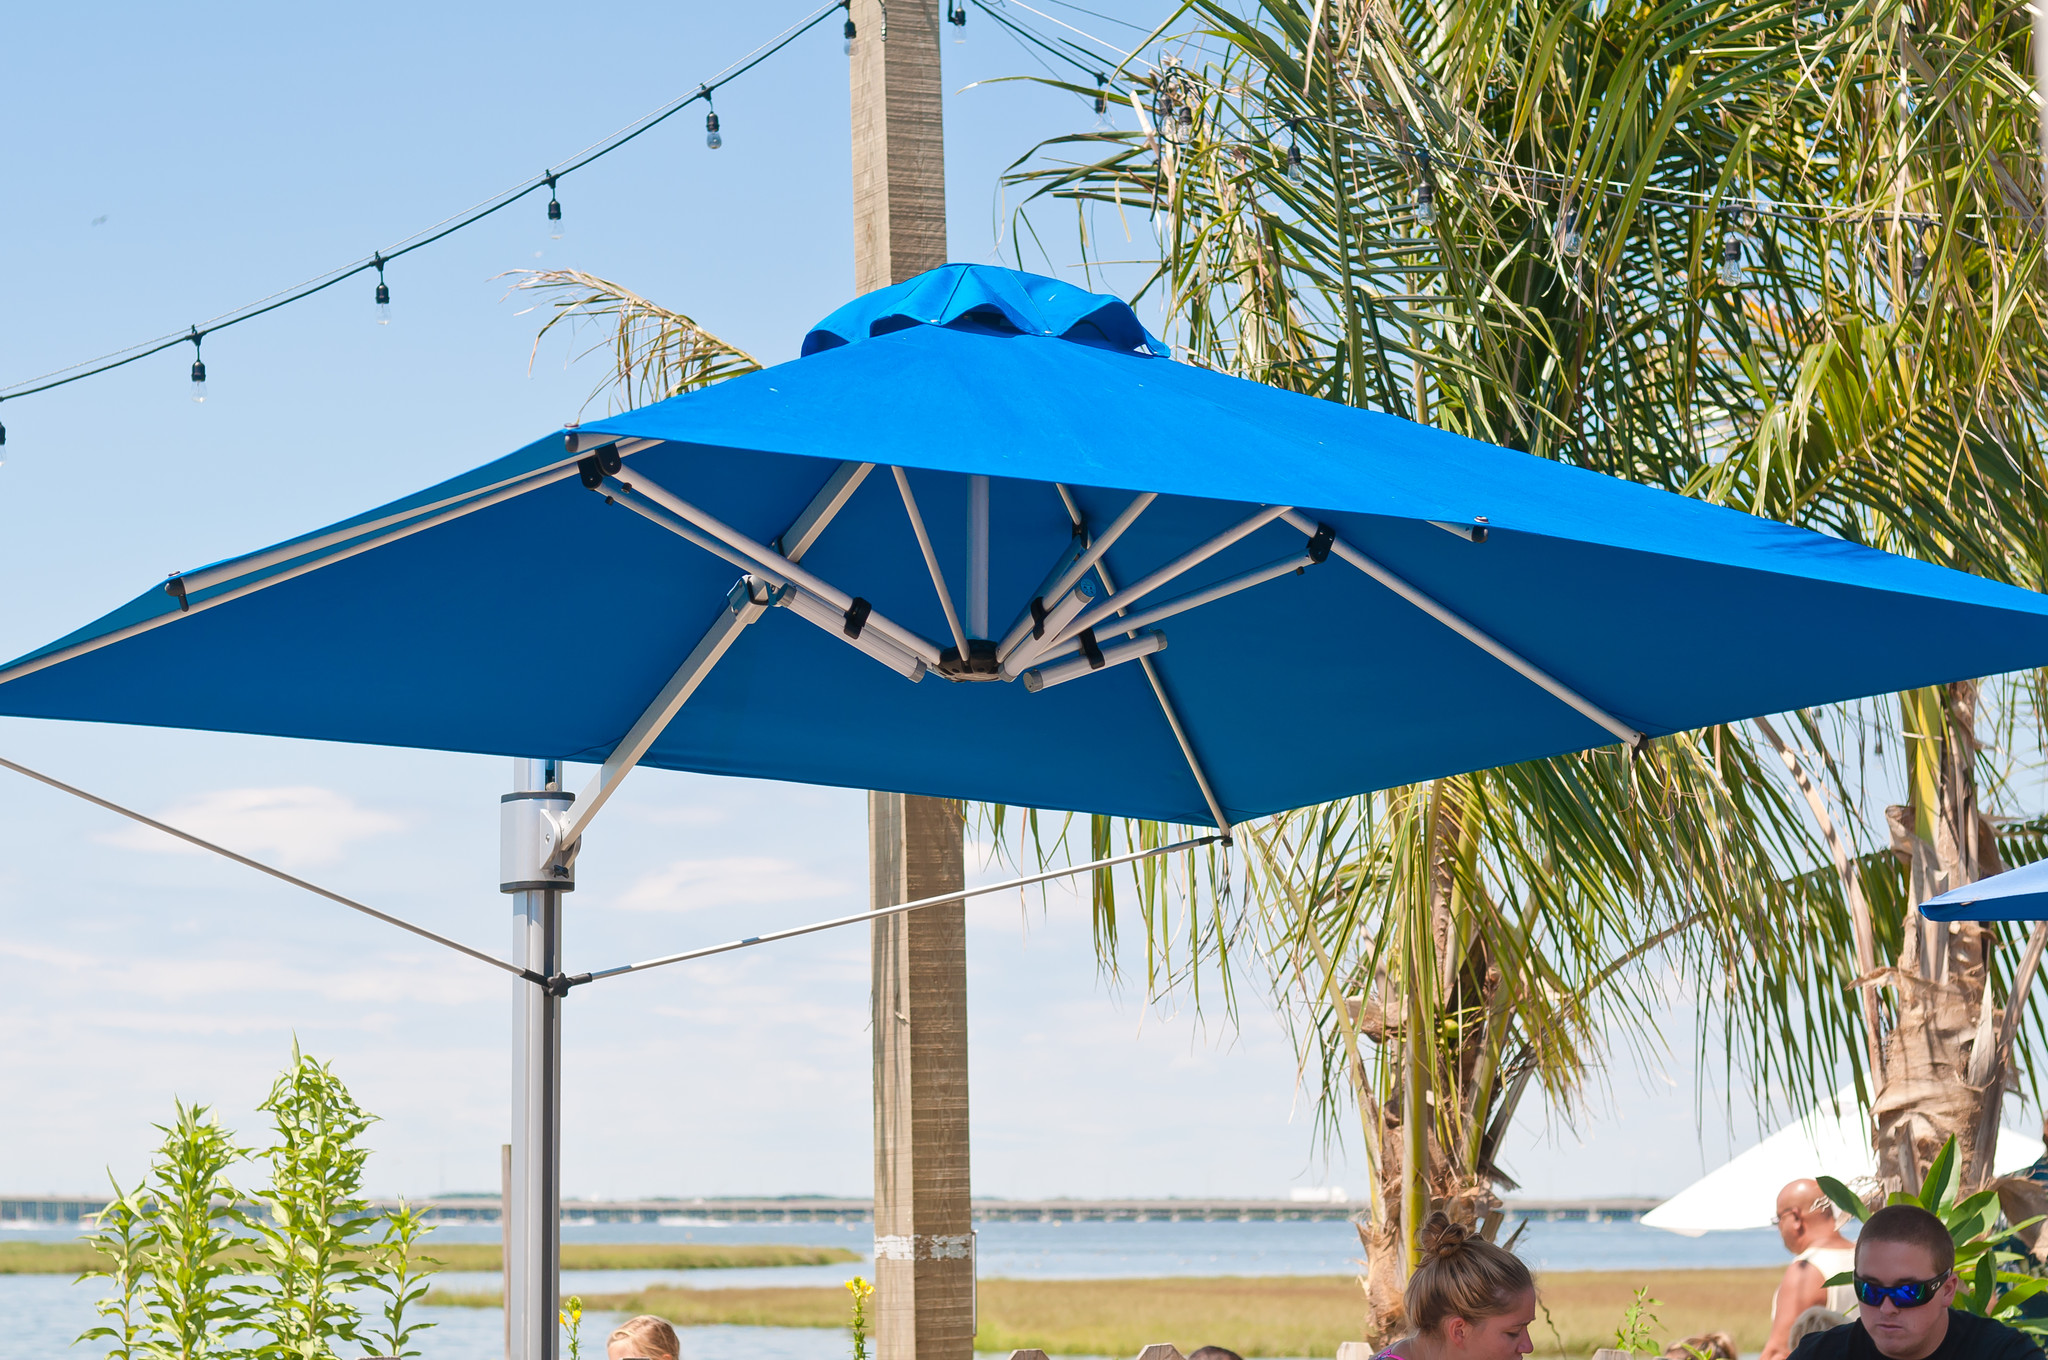 10 Square Eclipse Cantilever Umbrella Resort Umbrella